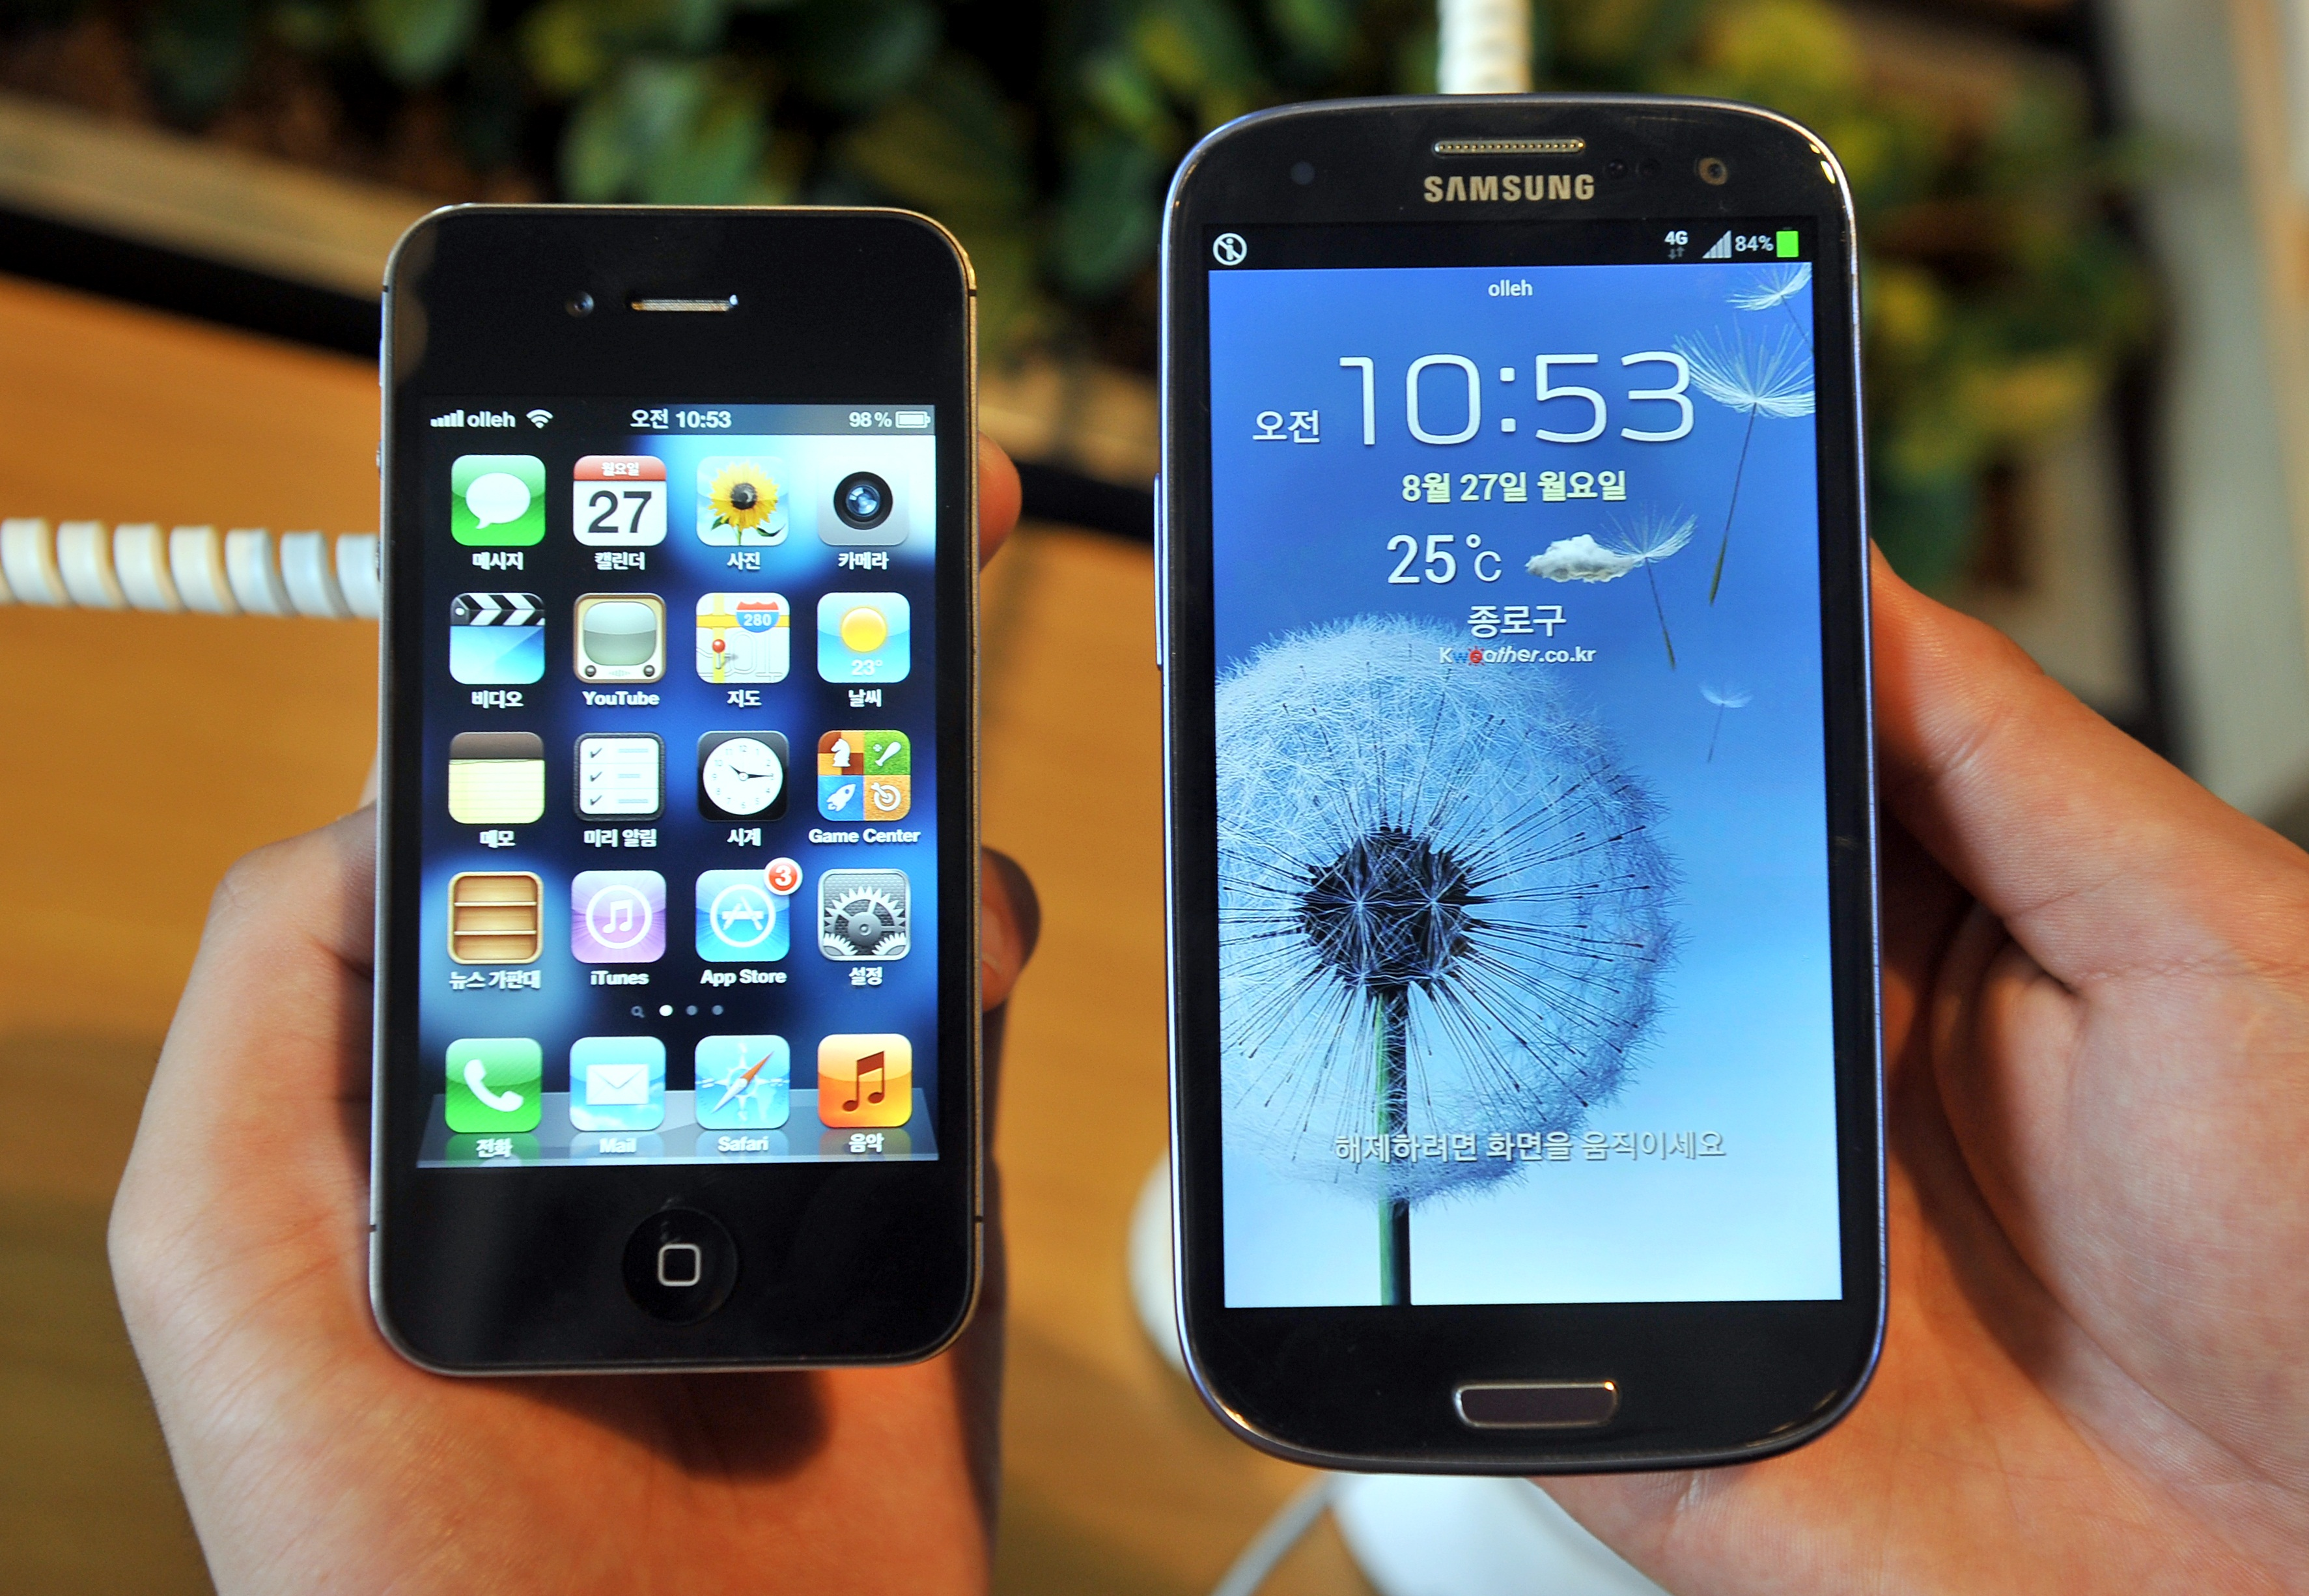 Apple 41.8% in US Smartphones, Samsung 26.1%, Android Down, iOS Up